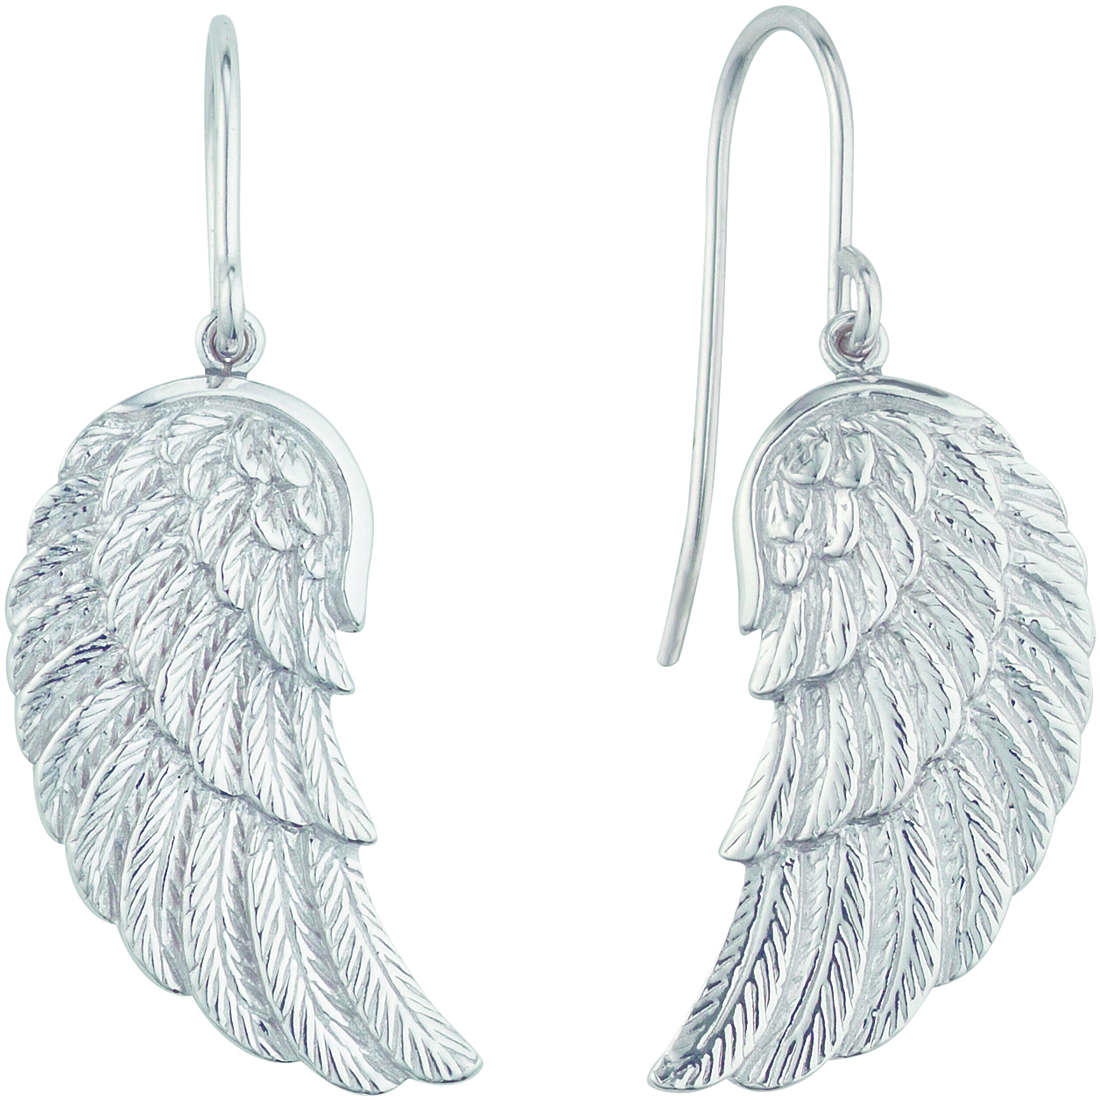 Engelsrufer earrings in sterling silver wing pendants ERE-WING